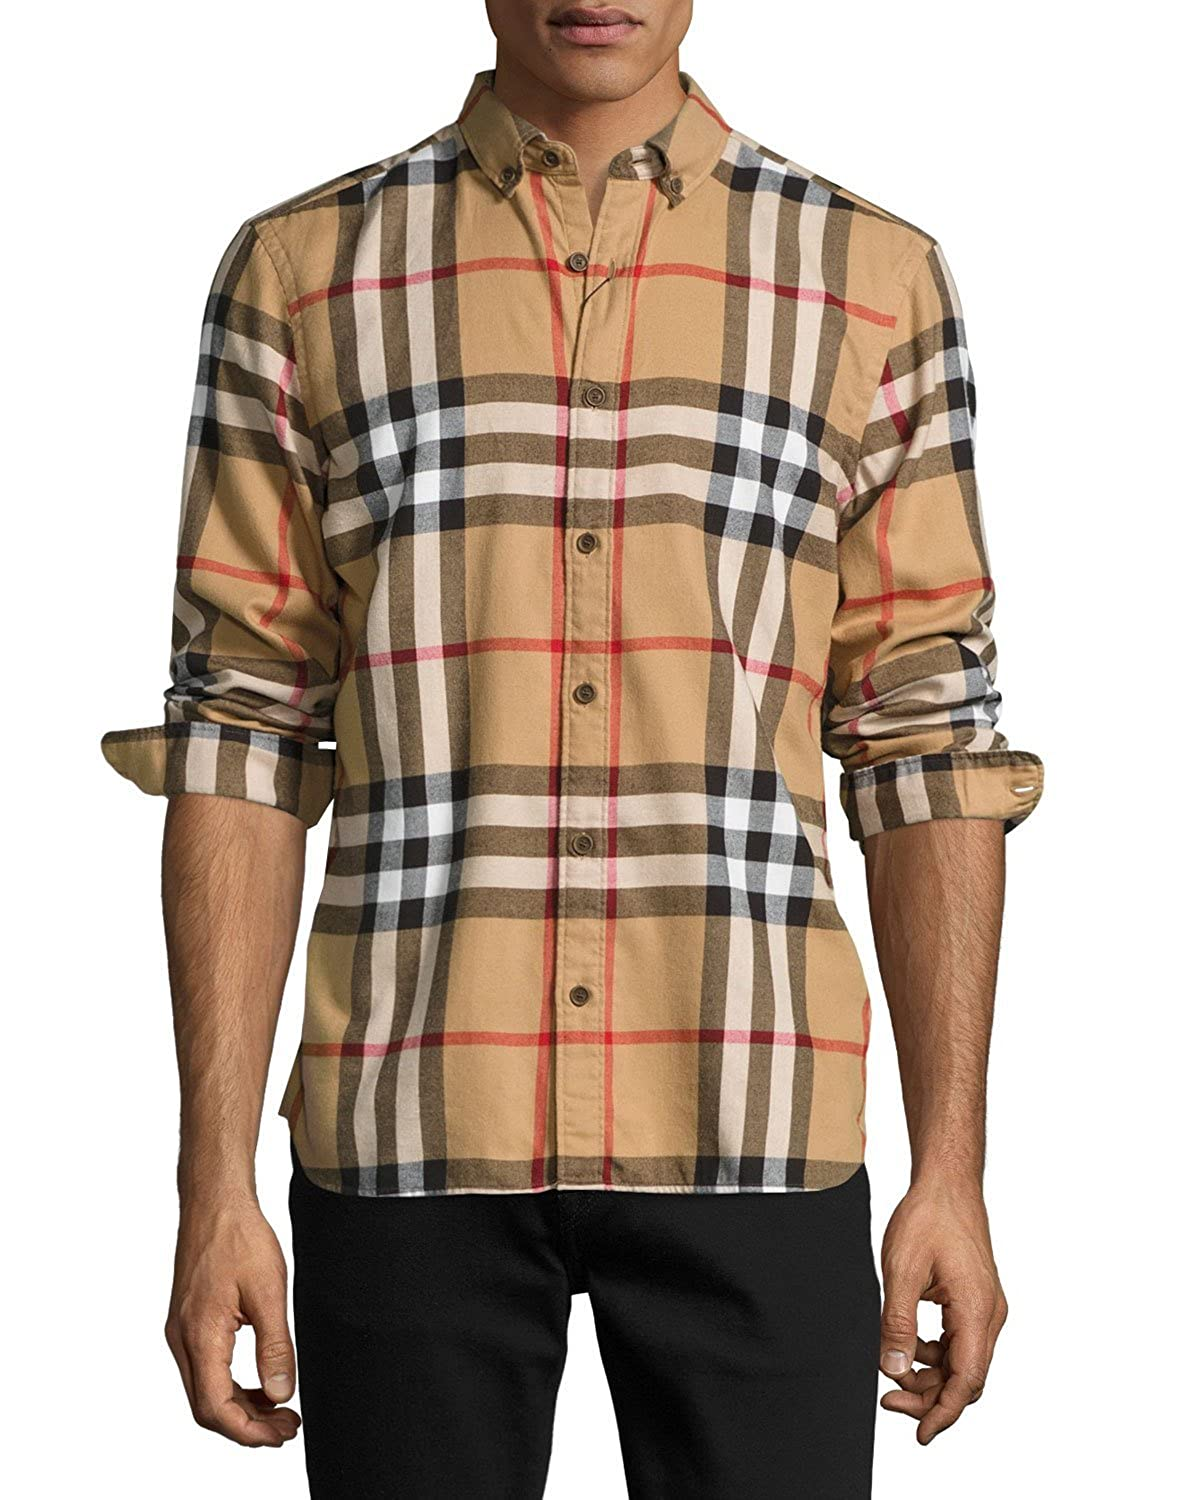 Burberry Check Cotton Flannel Shirt, Camel at Amazon Men's Clothing store: